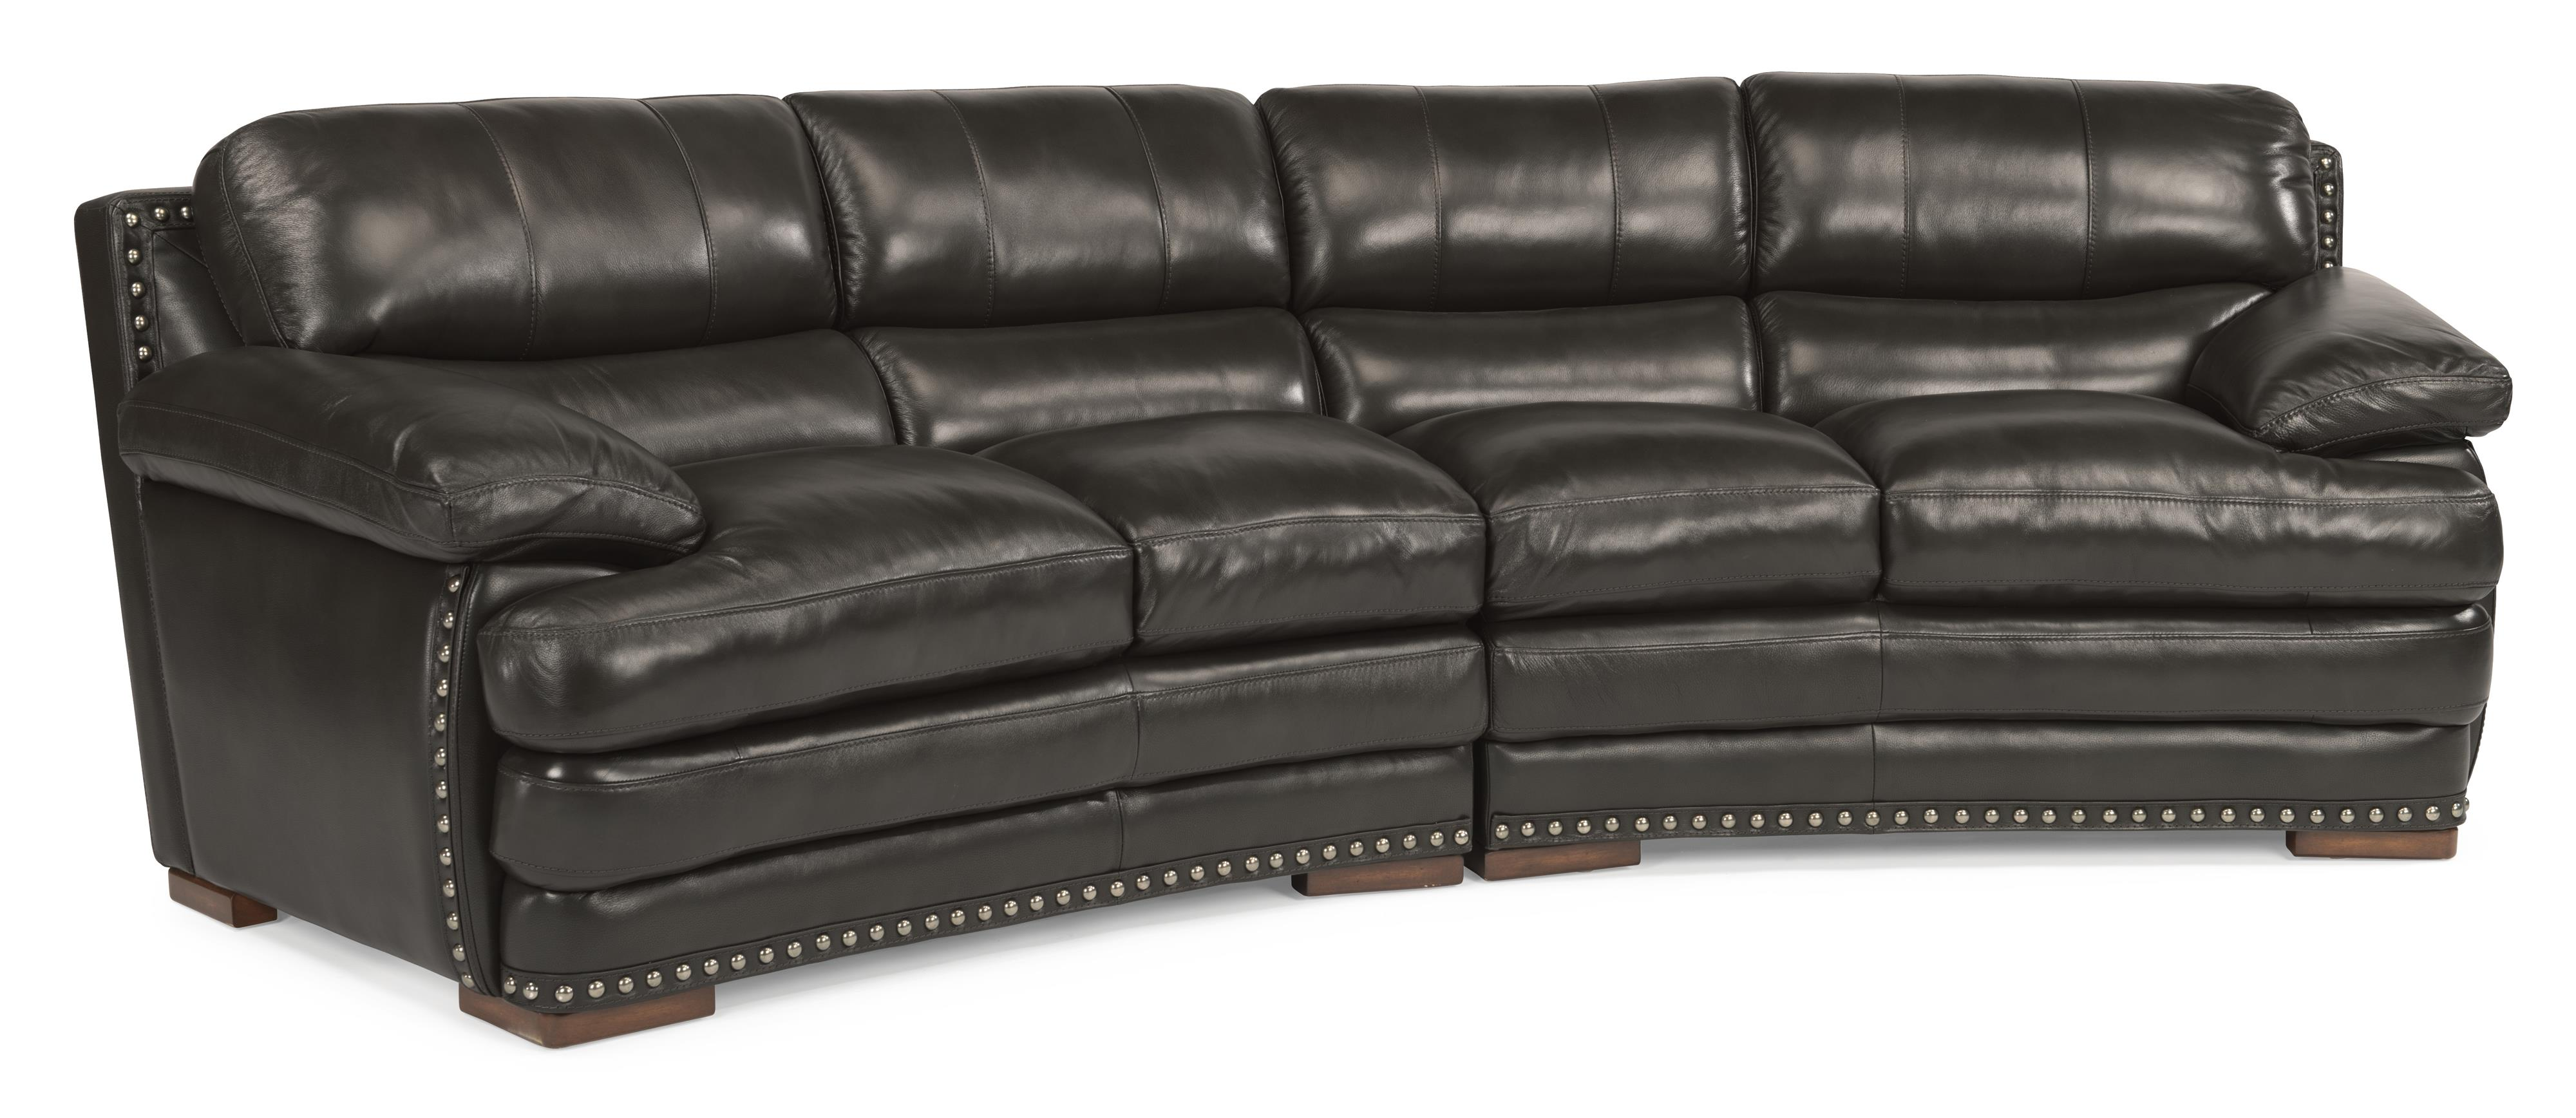 Flexsteel Latitudes - Dylan Leather Conversation Sofa w/ Nailheads - Item Number: 1627-325+326-908-01